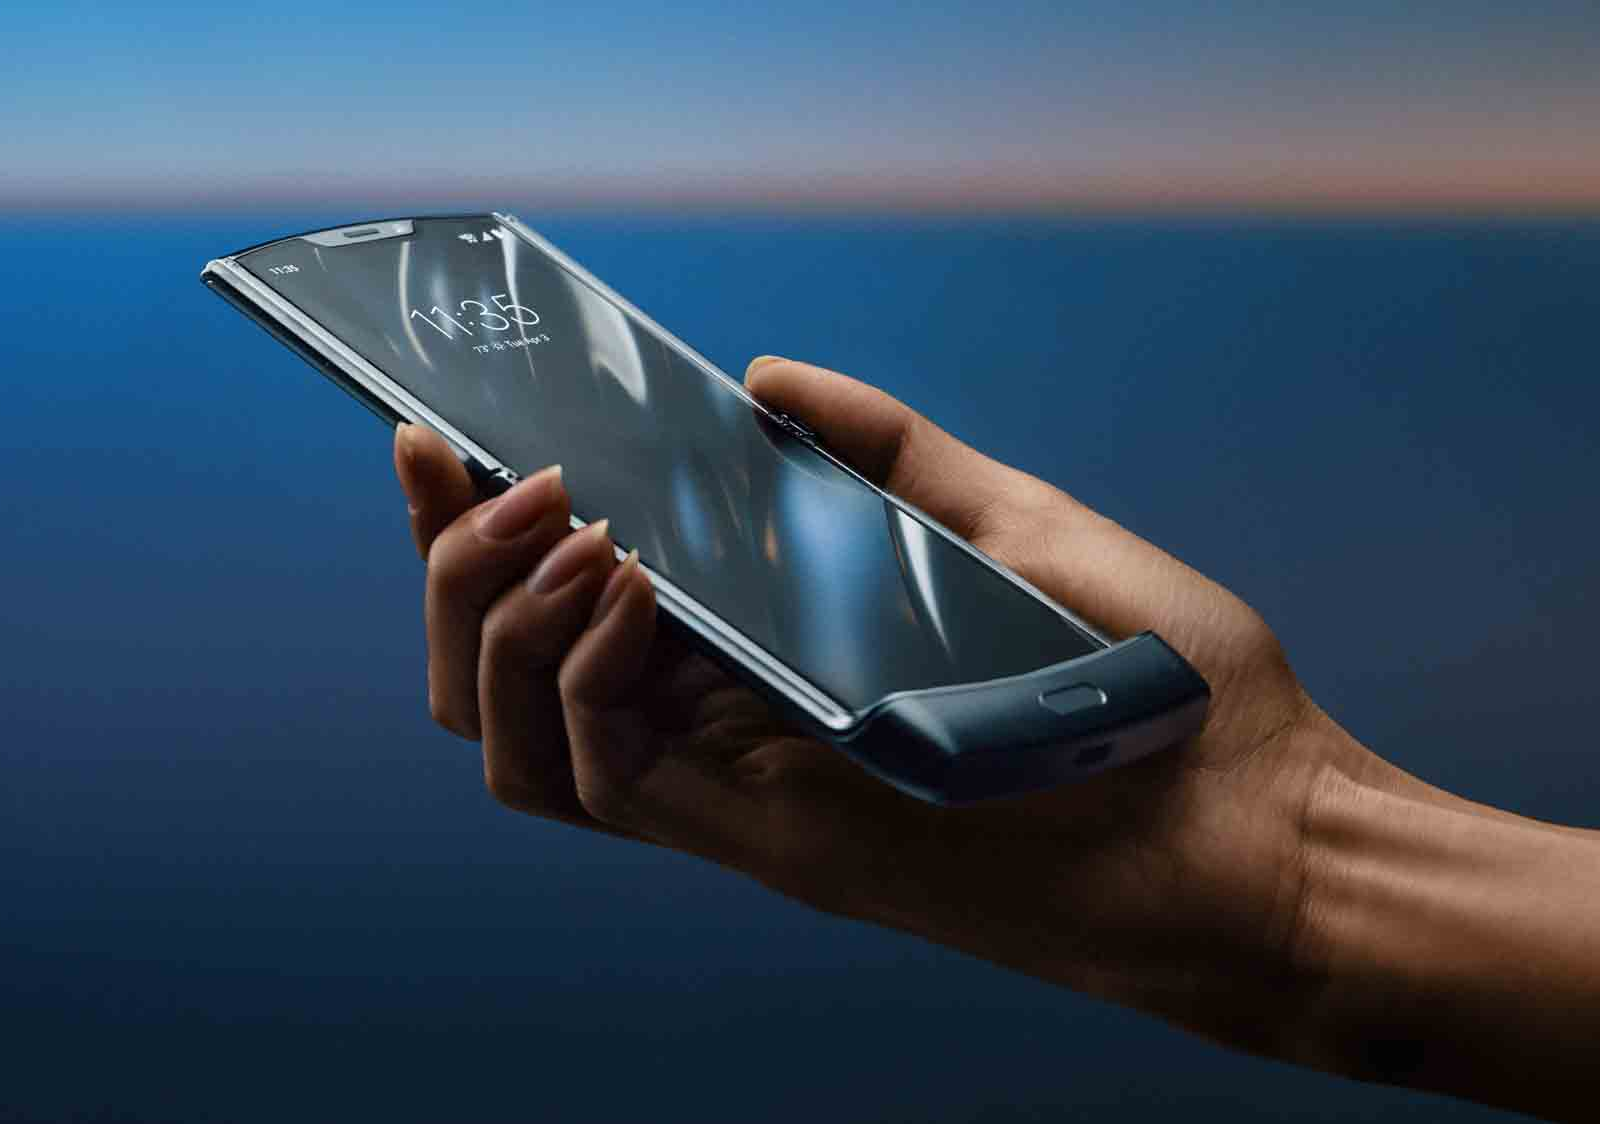 Motorola Razr 2020: Everything we know about the next foldable Razr